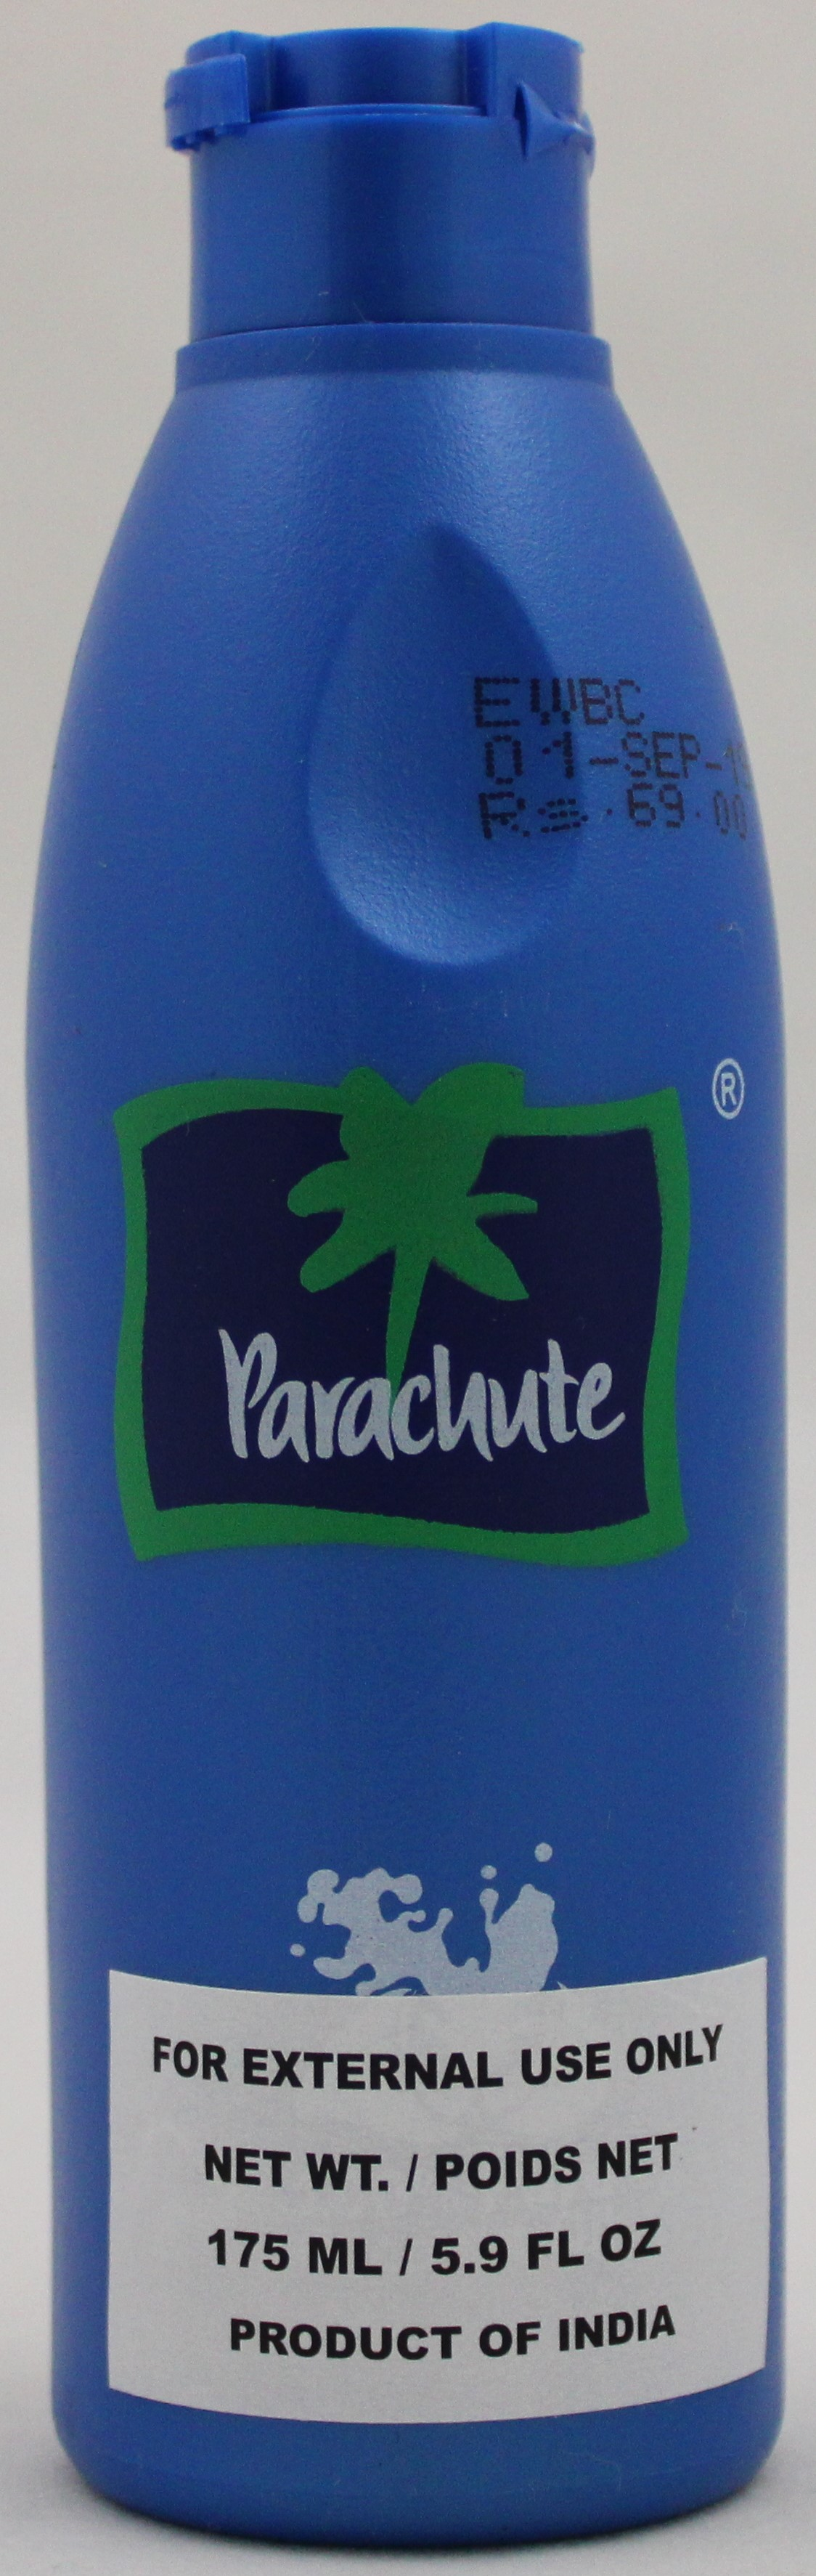 Parachute coconut oil 5.9 oz